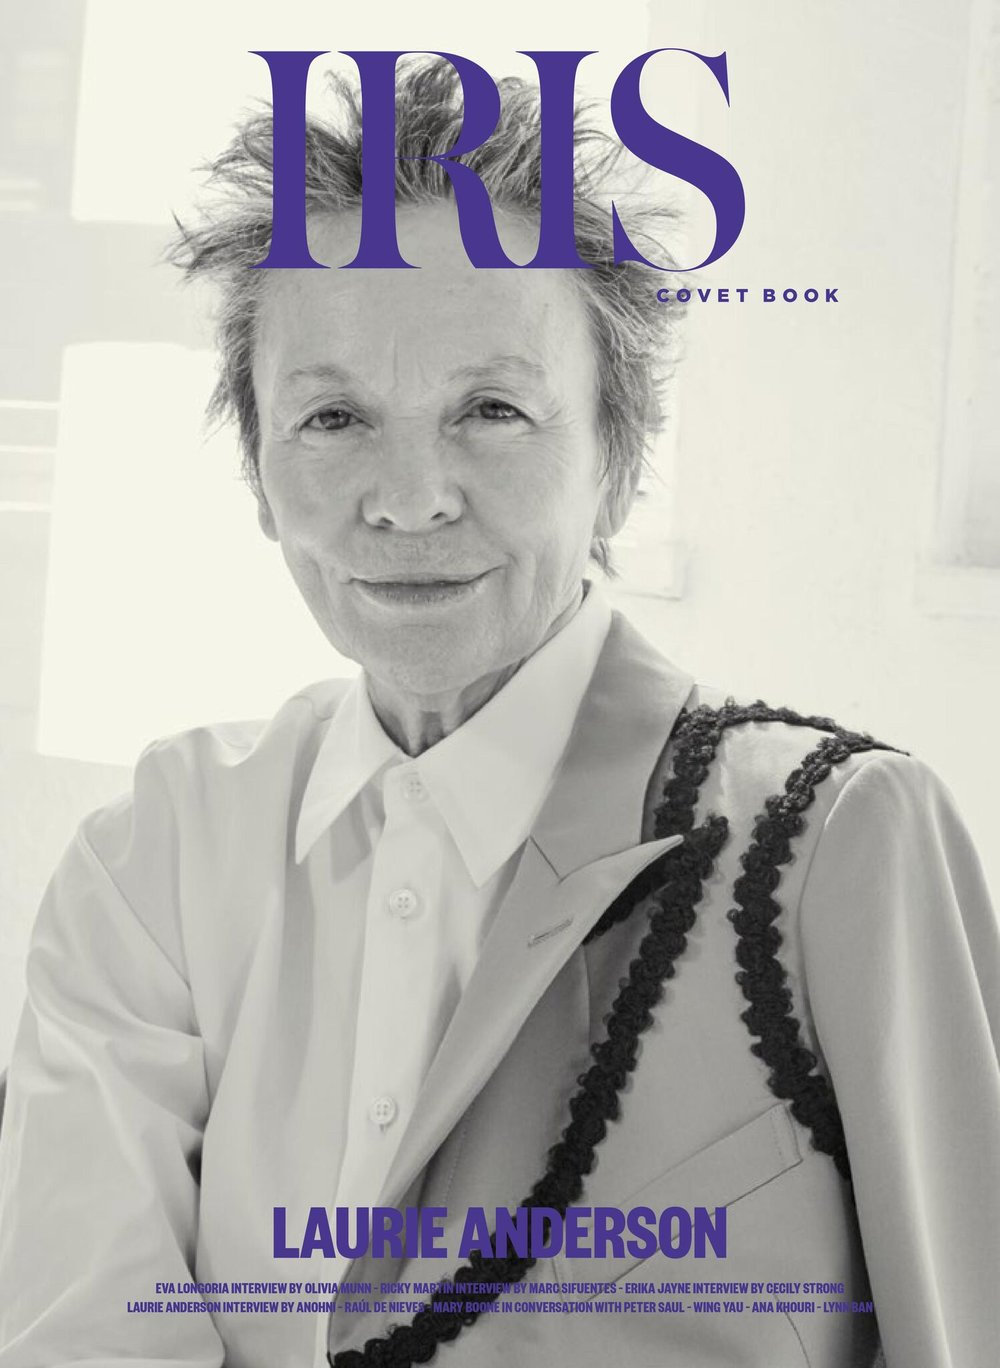 Iris Covet Book Issue 11 (Summer 2018) Feature Cover_preview.jpg